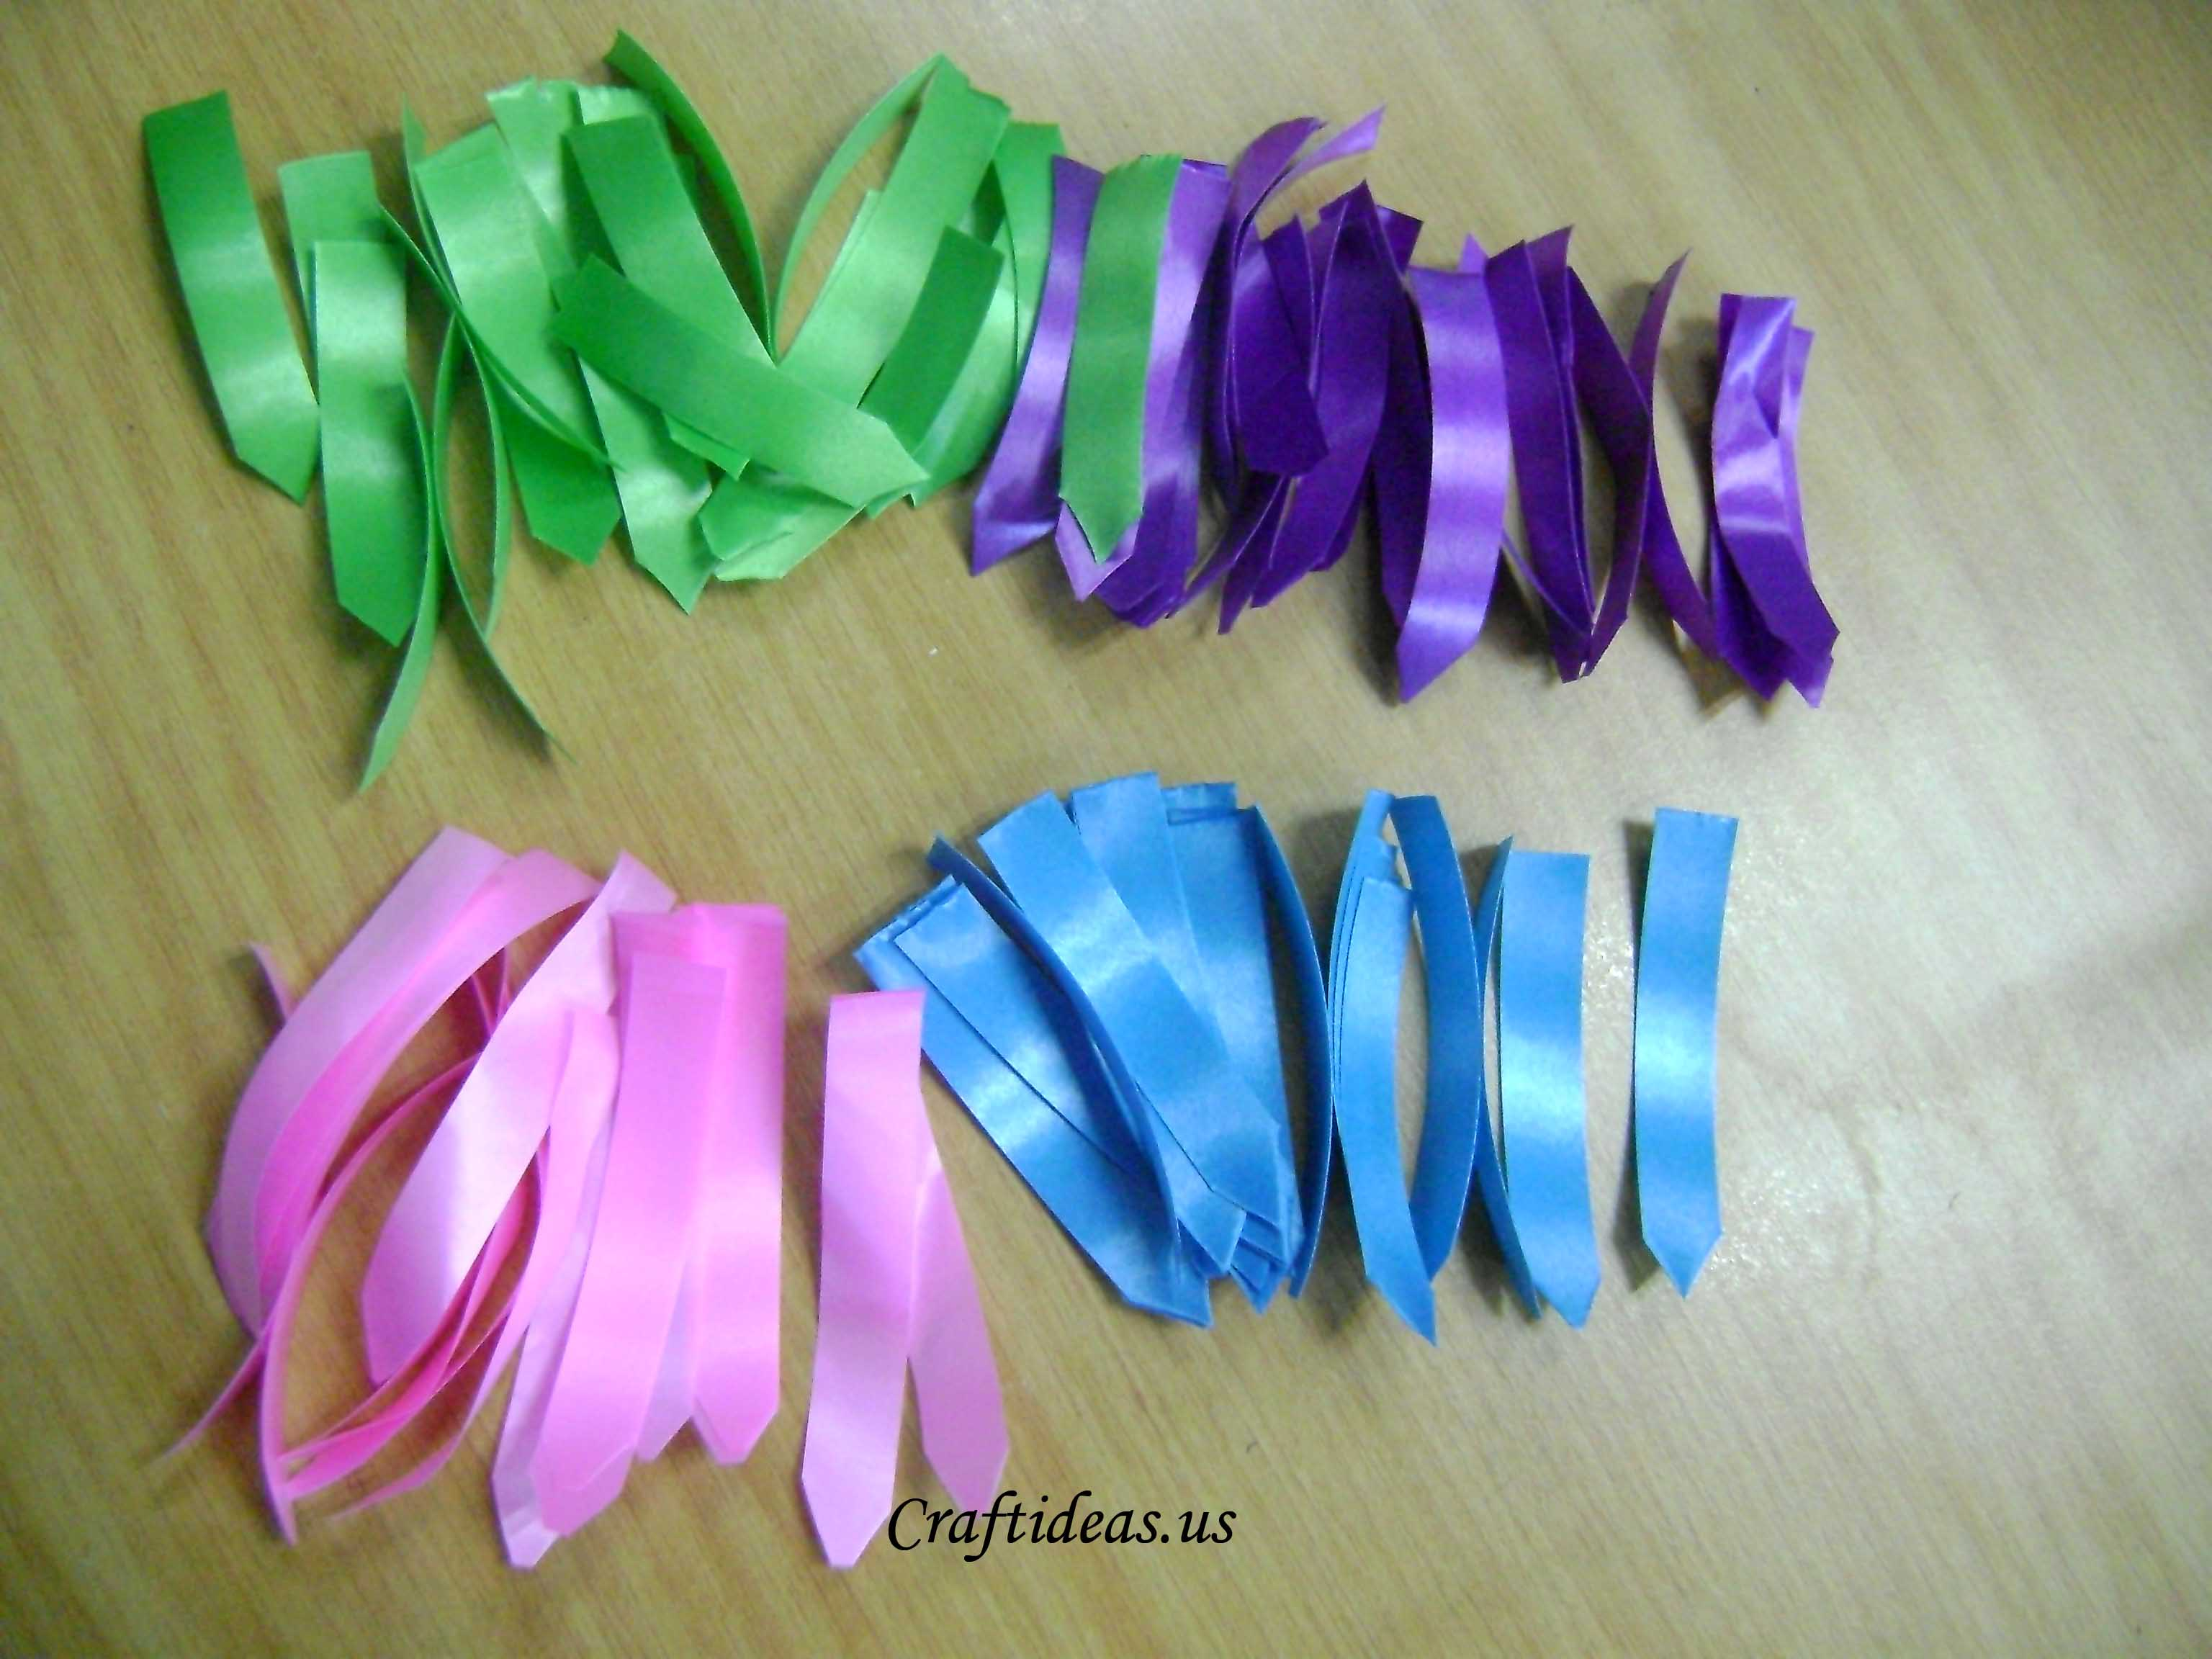 Spring flowers ribbon flowers tutorial craft ideas step 2 cutting in haft a4 paper rolling each part in to have small sheet and use glue to stick it mightylinksfo